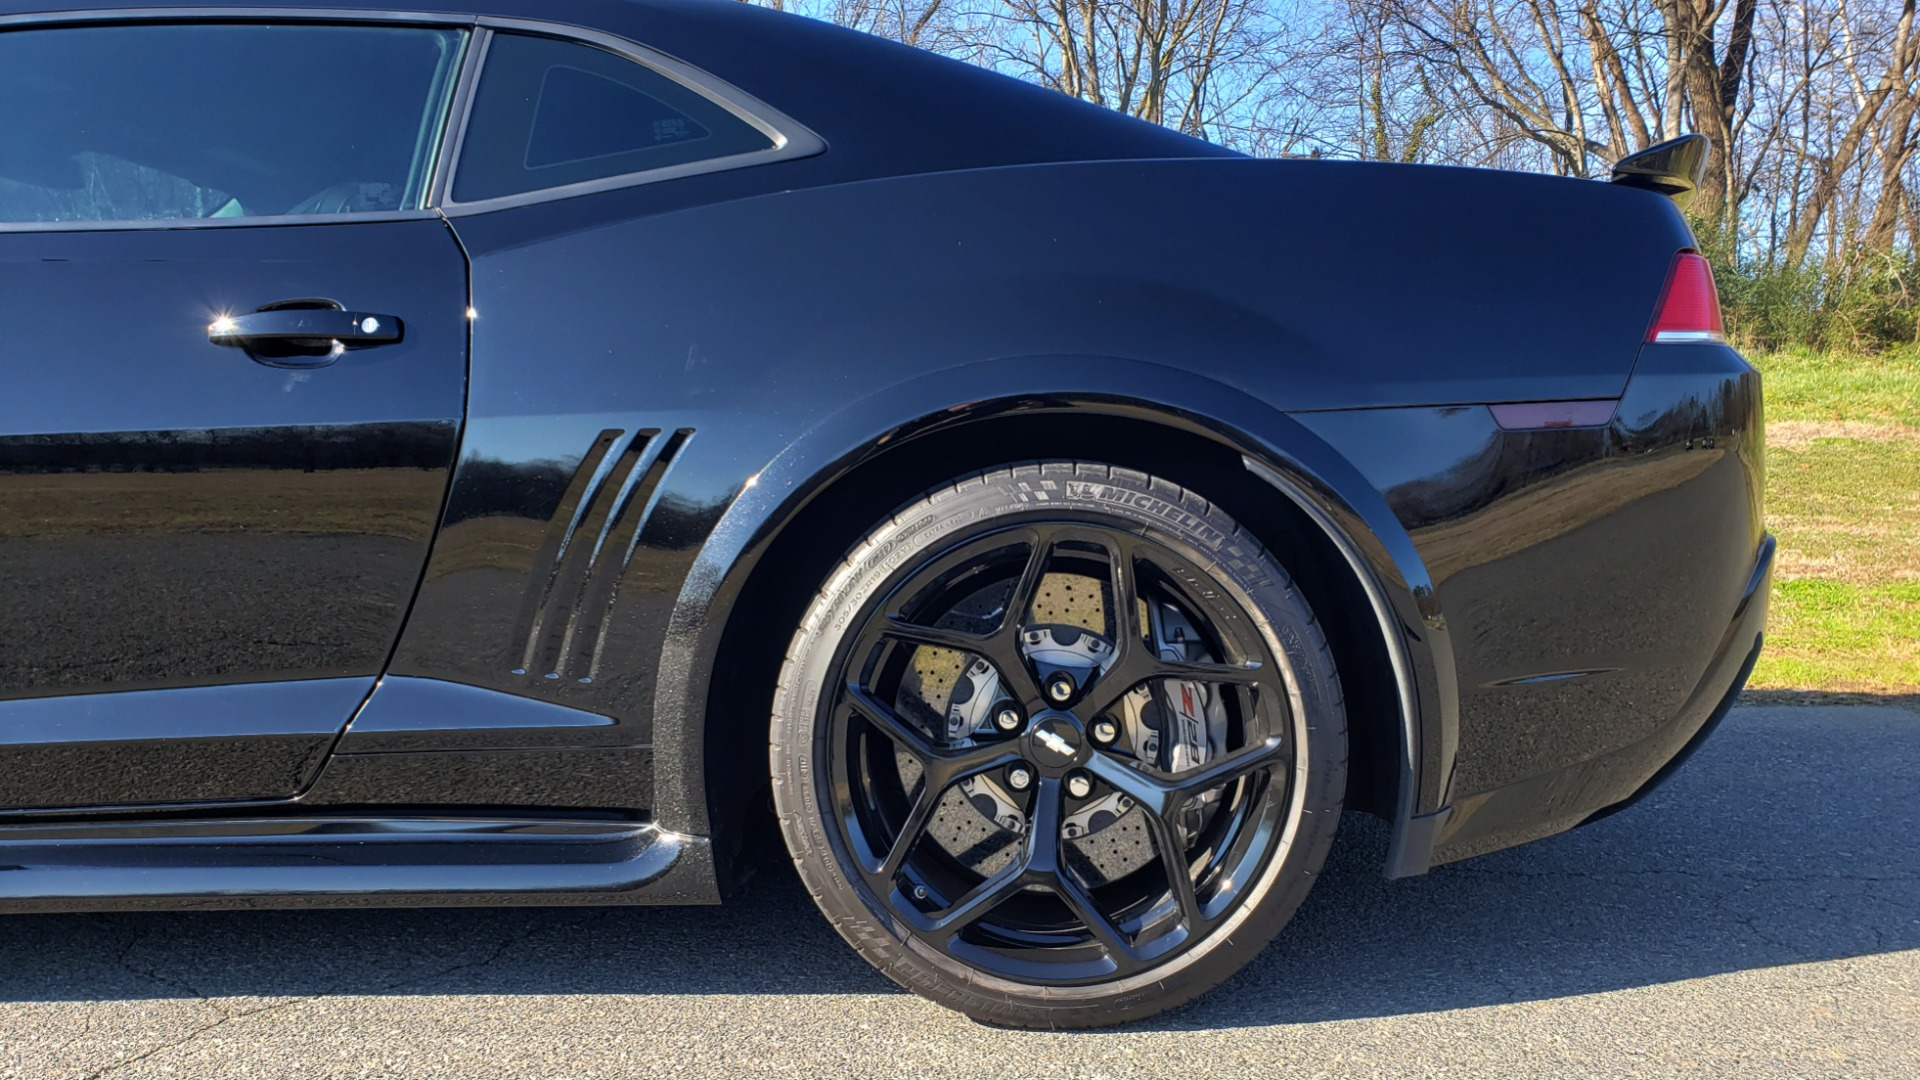 Used 2014 Chevrolet CAMARO Z/28 / 427 7.0L V8 505HP / RADIO / AIR CONDITIONING for sale Sold at Formula Imports in Charlotte NC 28227 23